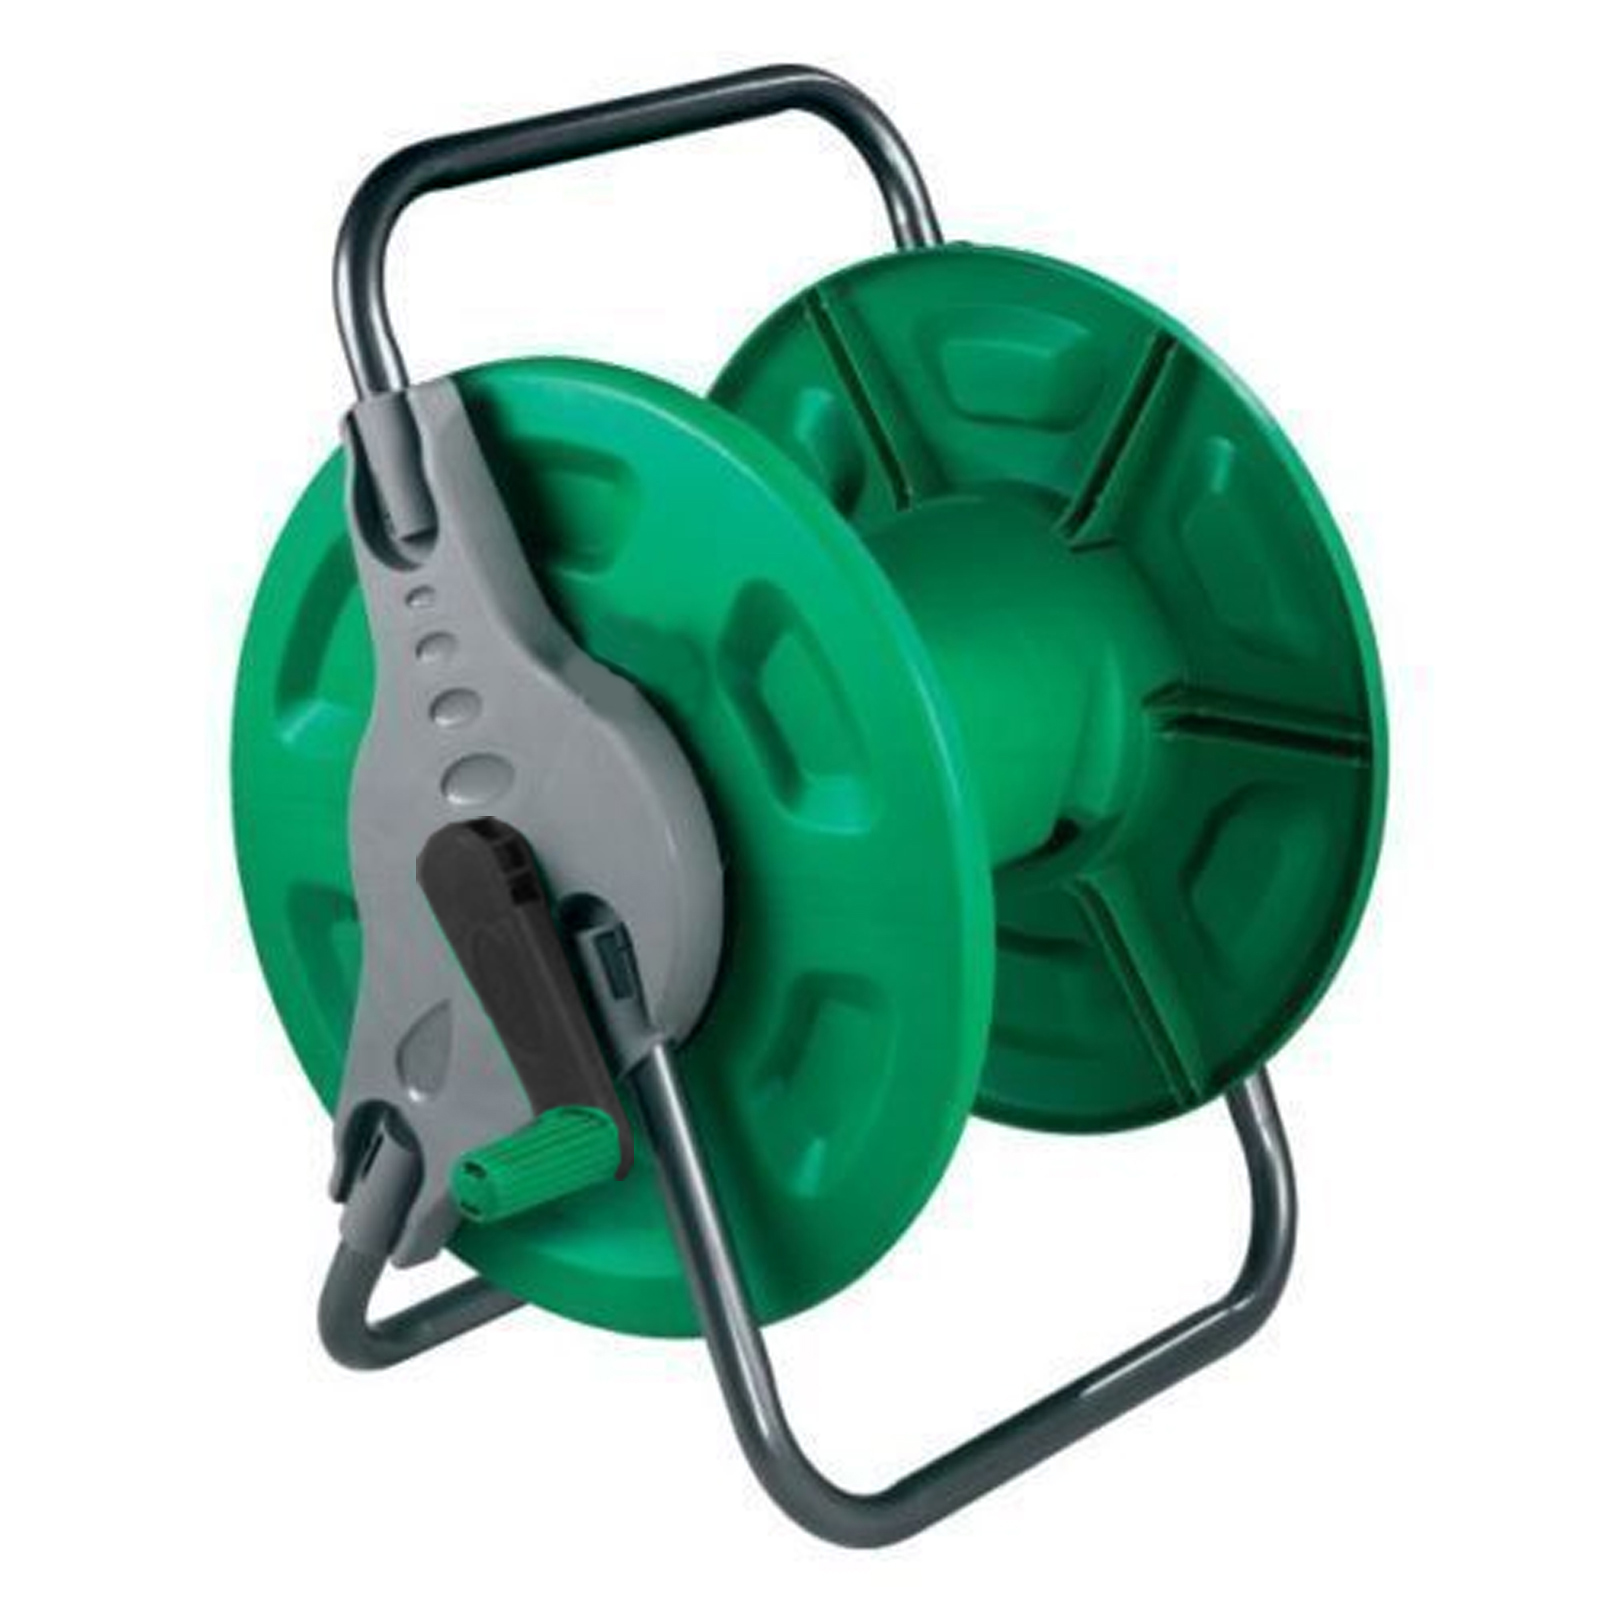 Portable Free Standing Hose Pipe Reel Holder Garden Cart Water Pipe Carrier Ebay